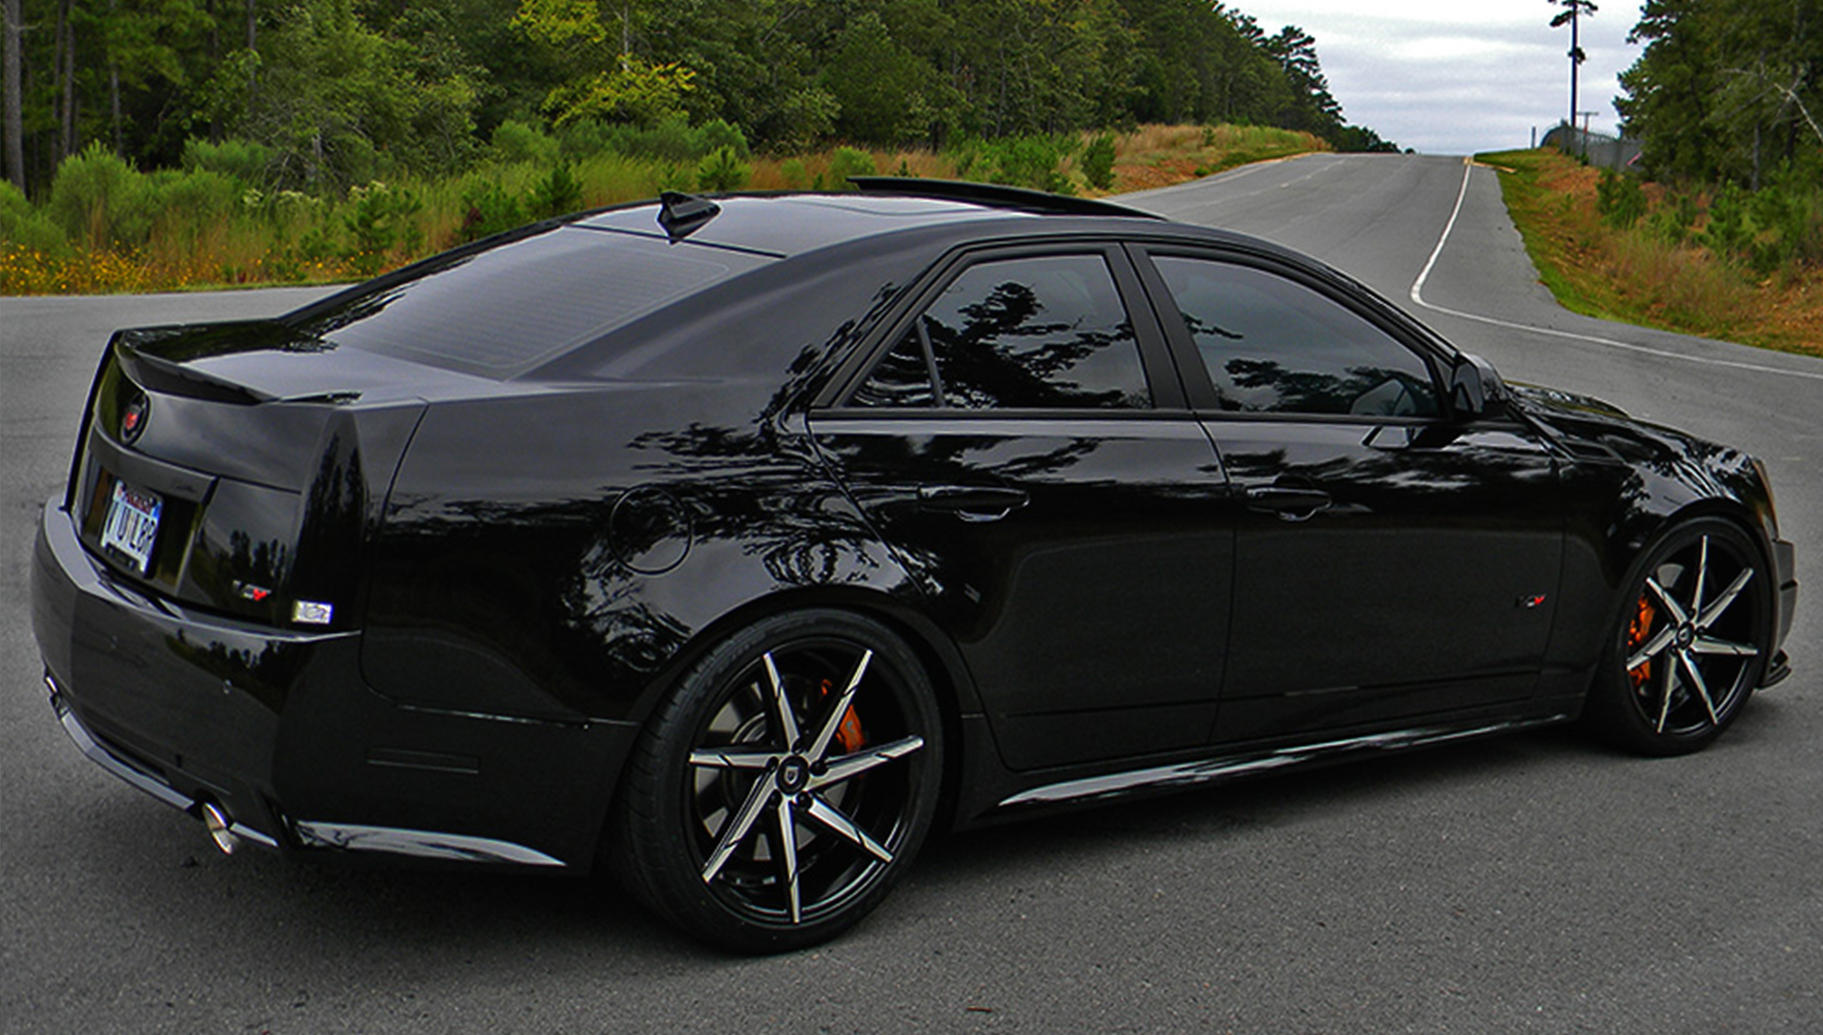 ... of the 2016 Cadillac CTS-V Sedan will start in the summer of 2015